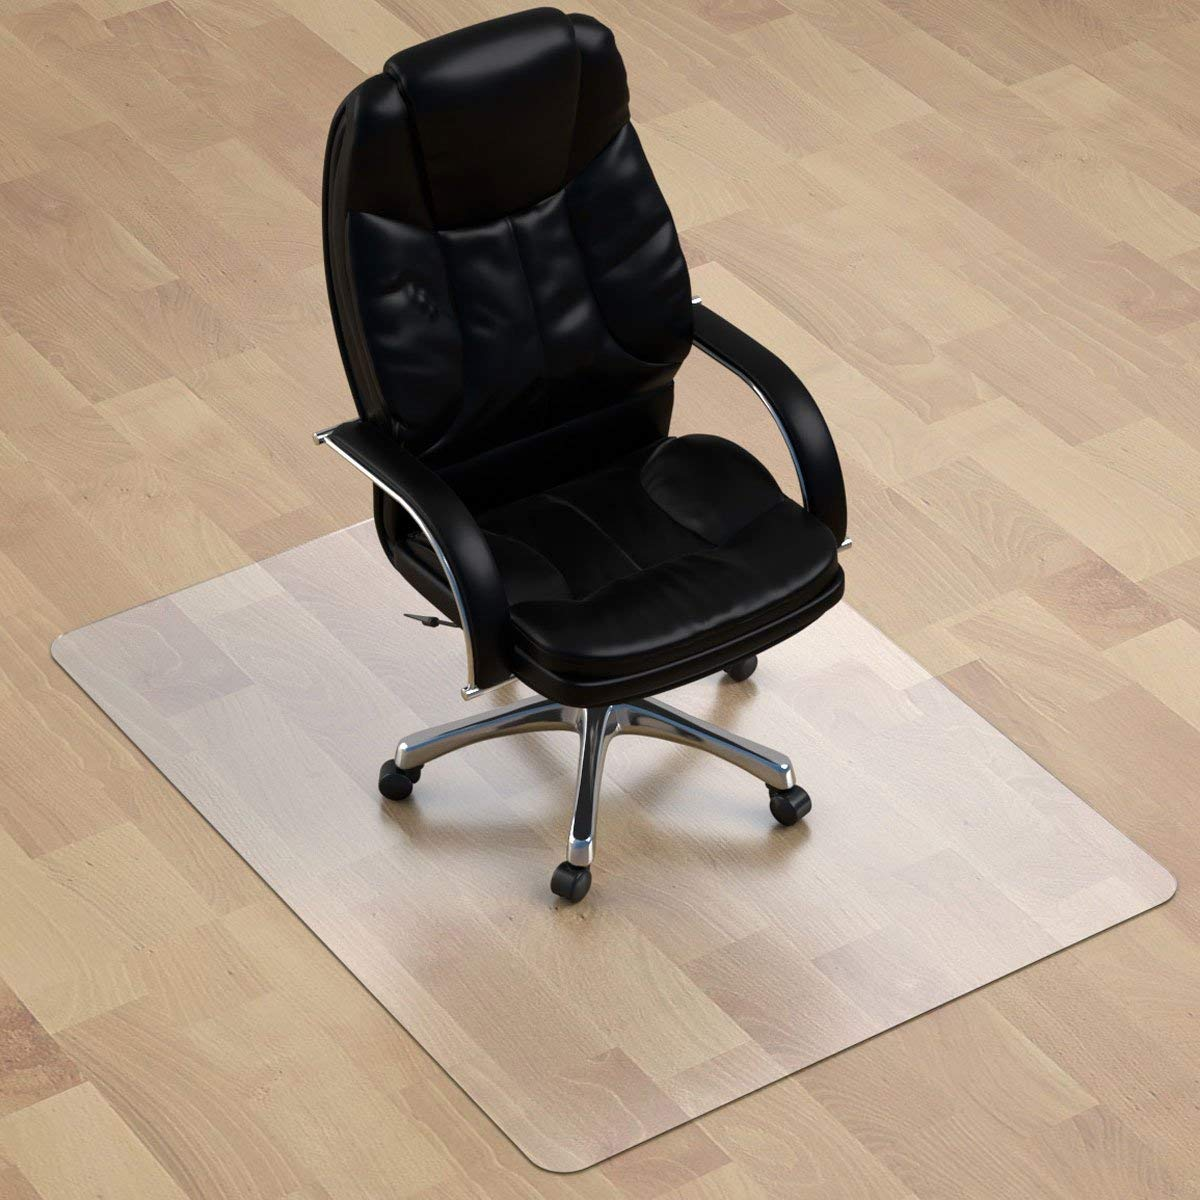 "E-joy Floor Chair Mat - 1/8"" Thick 47"" X 35"" Rectangular Heavy Duty Chair Mat for Hardwood Floor, BPA Free Anti Slip PVC Multi Purpose (Office, Home) Floor Protector"